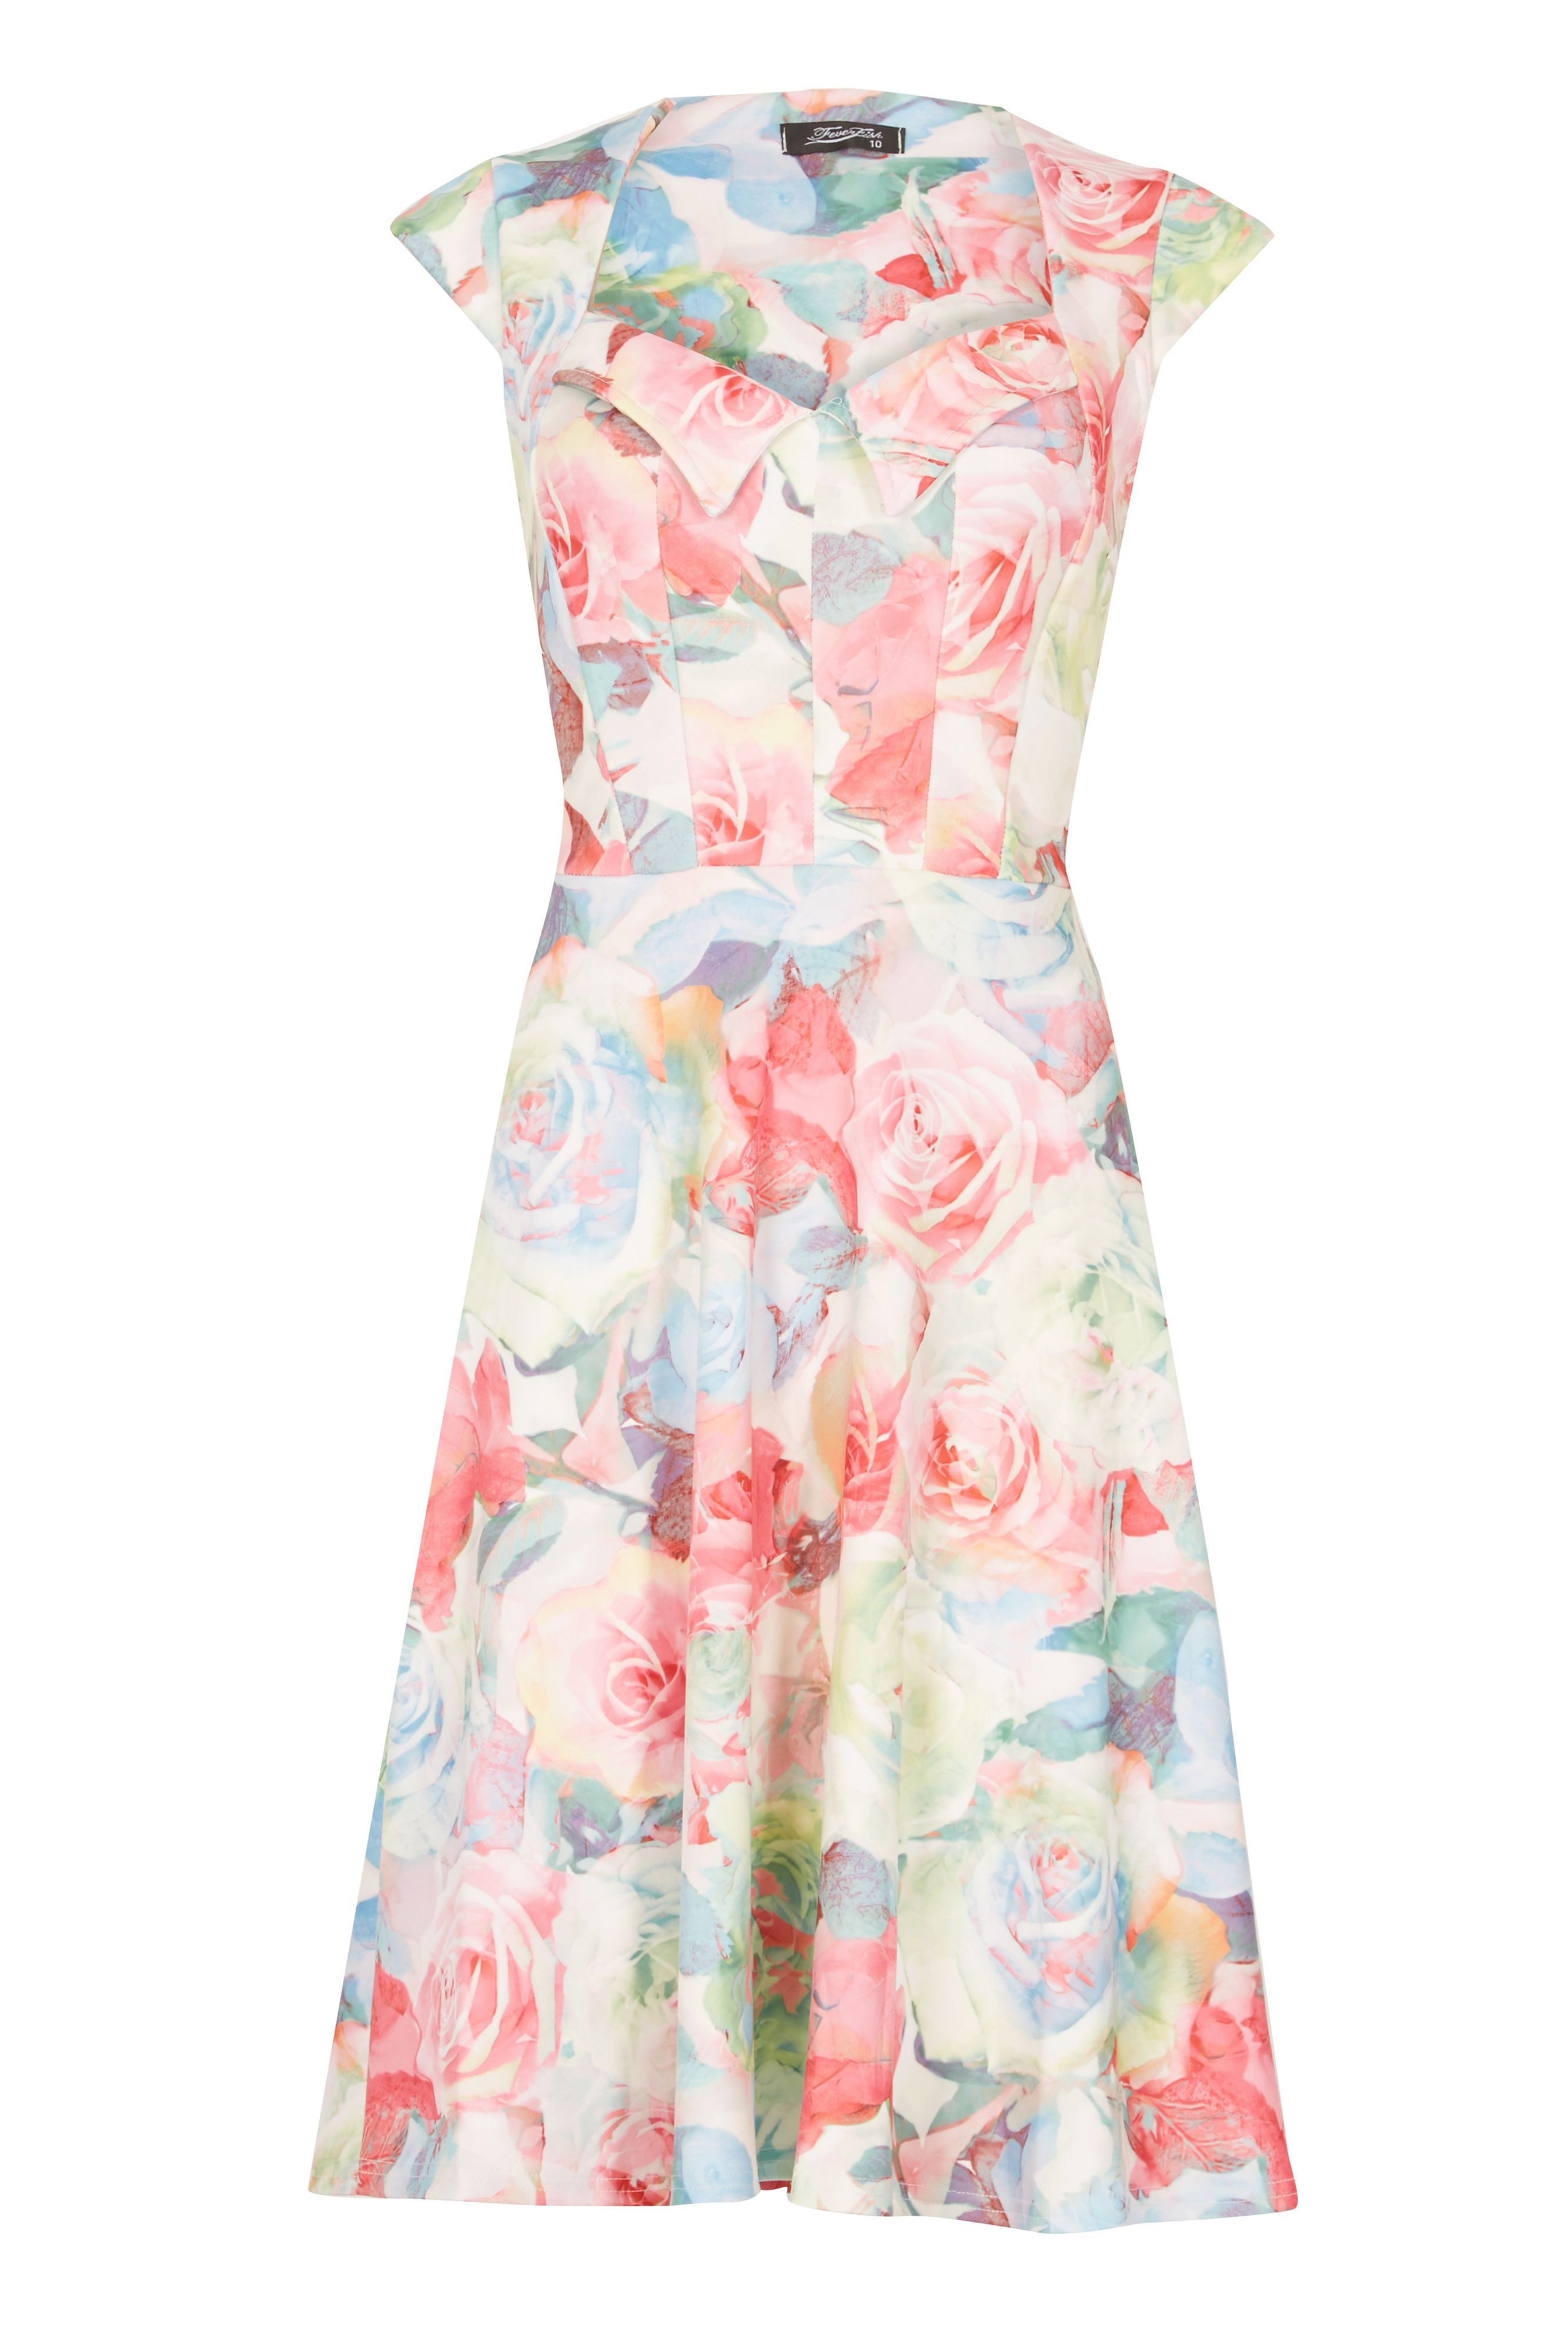 Feverfish Flower Print Flared Scuba Dress, Pink